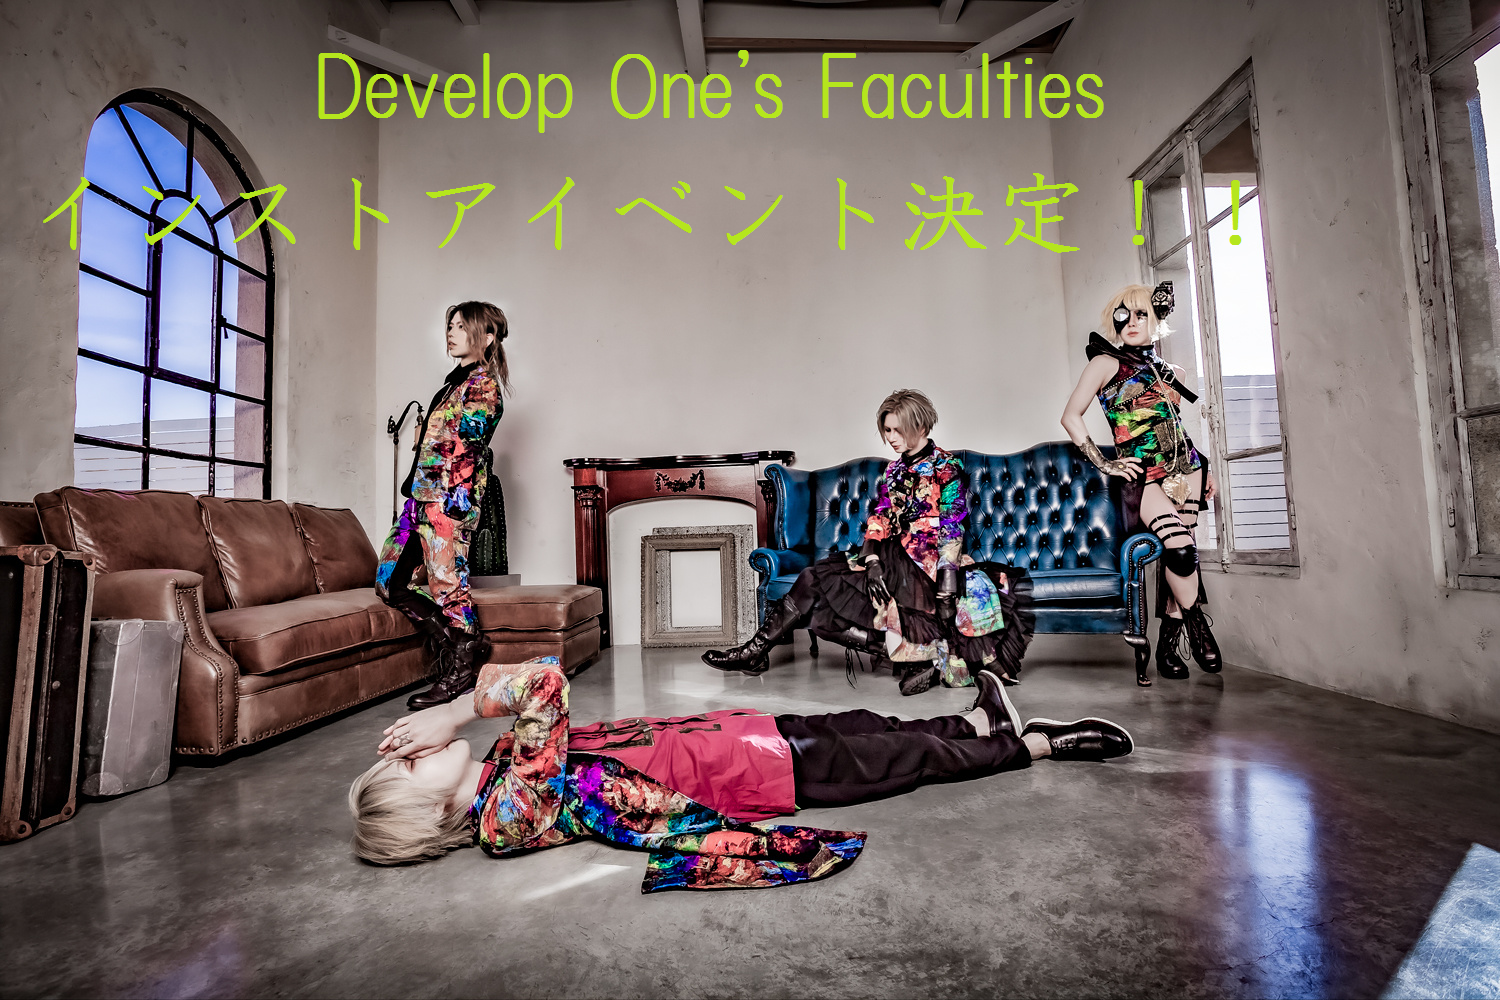 Develop One's Facultiesインストアイベント決定!